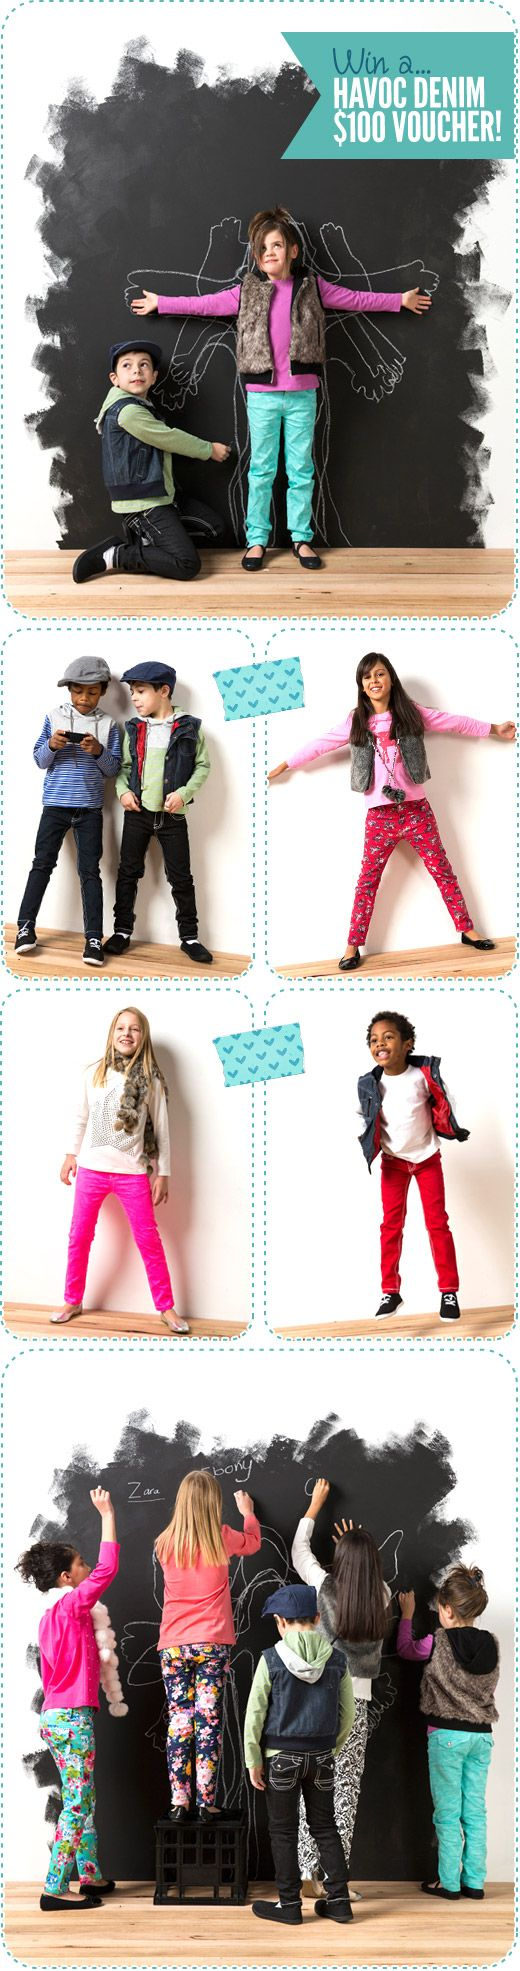 Havoc Denim Kids Jeans Giveaway, Competition